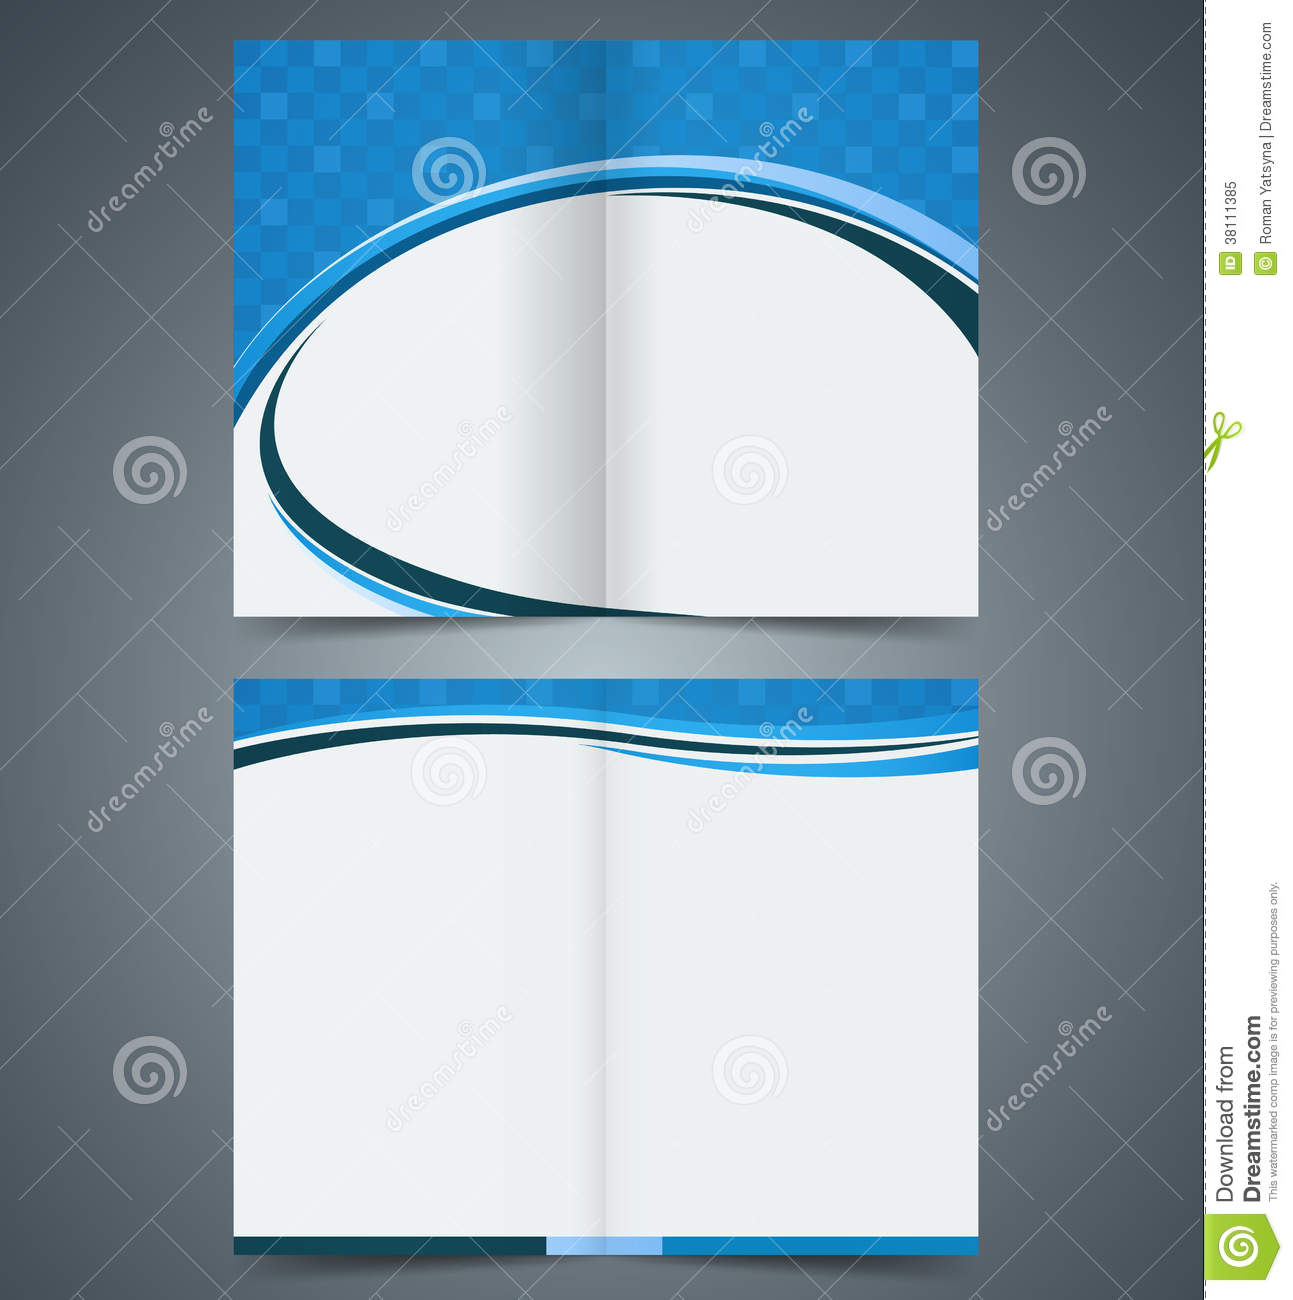 Bi fold card template etamemibawa bi fold card template wajeb Image collections